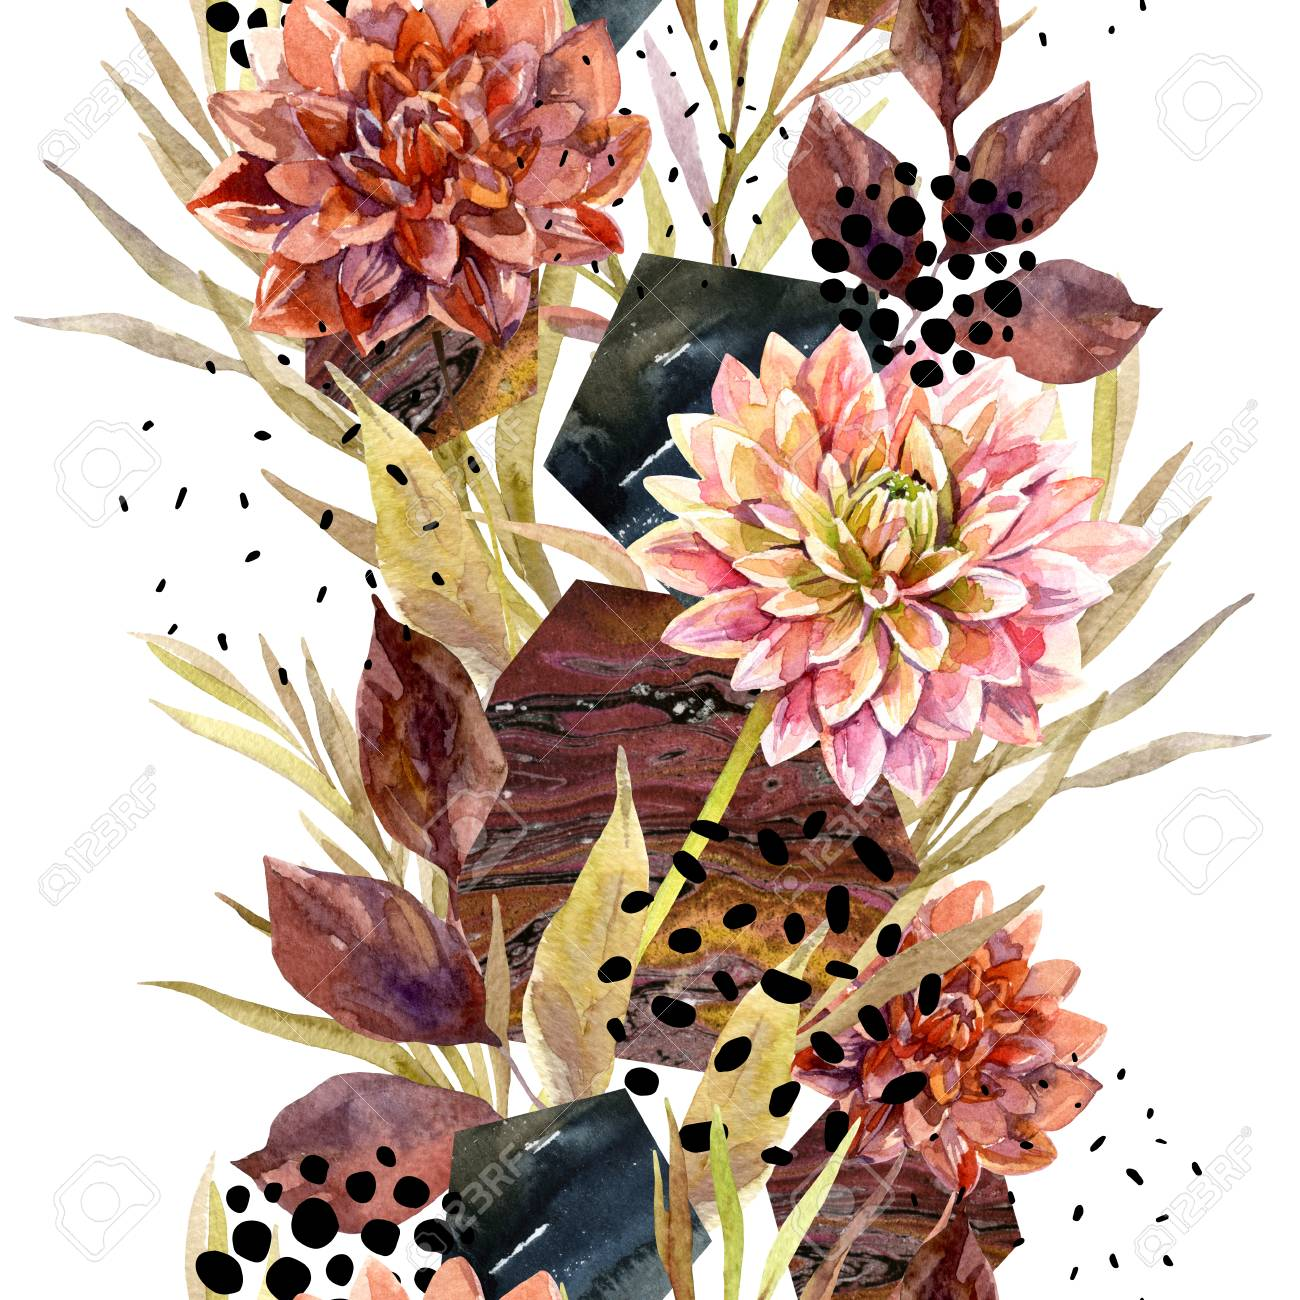 Autumn Watercolor Floral Arrangement Background With Flowers